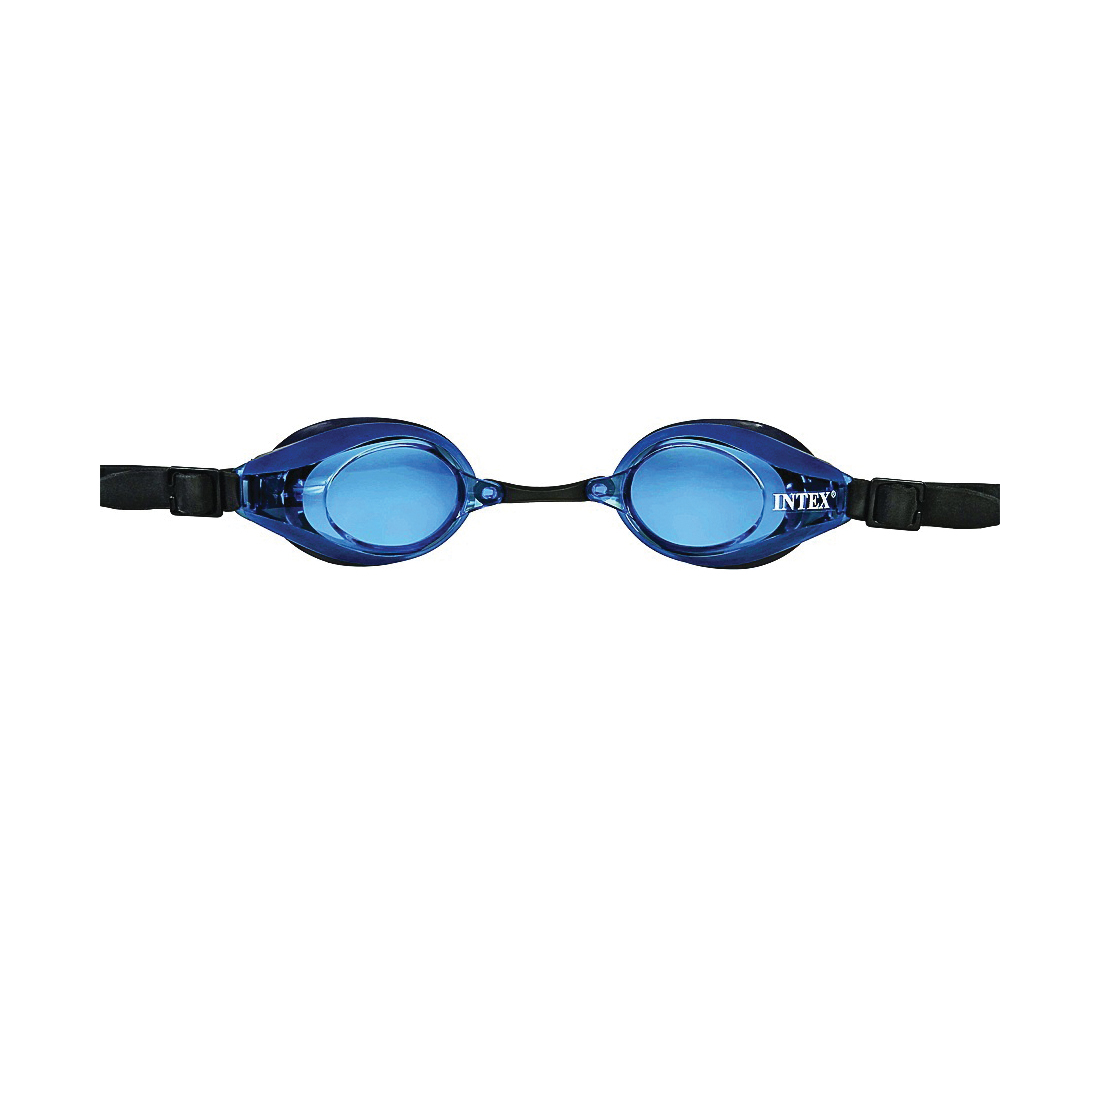 Picture of INTEX 55691 Swim Goggles, Silicone Frame